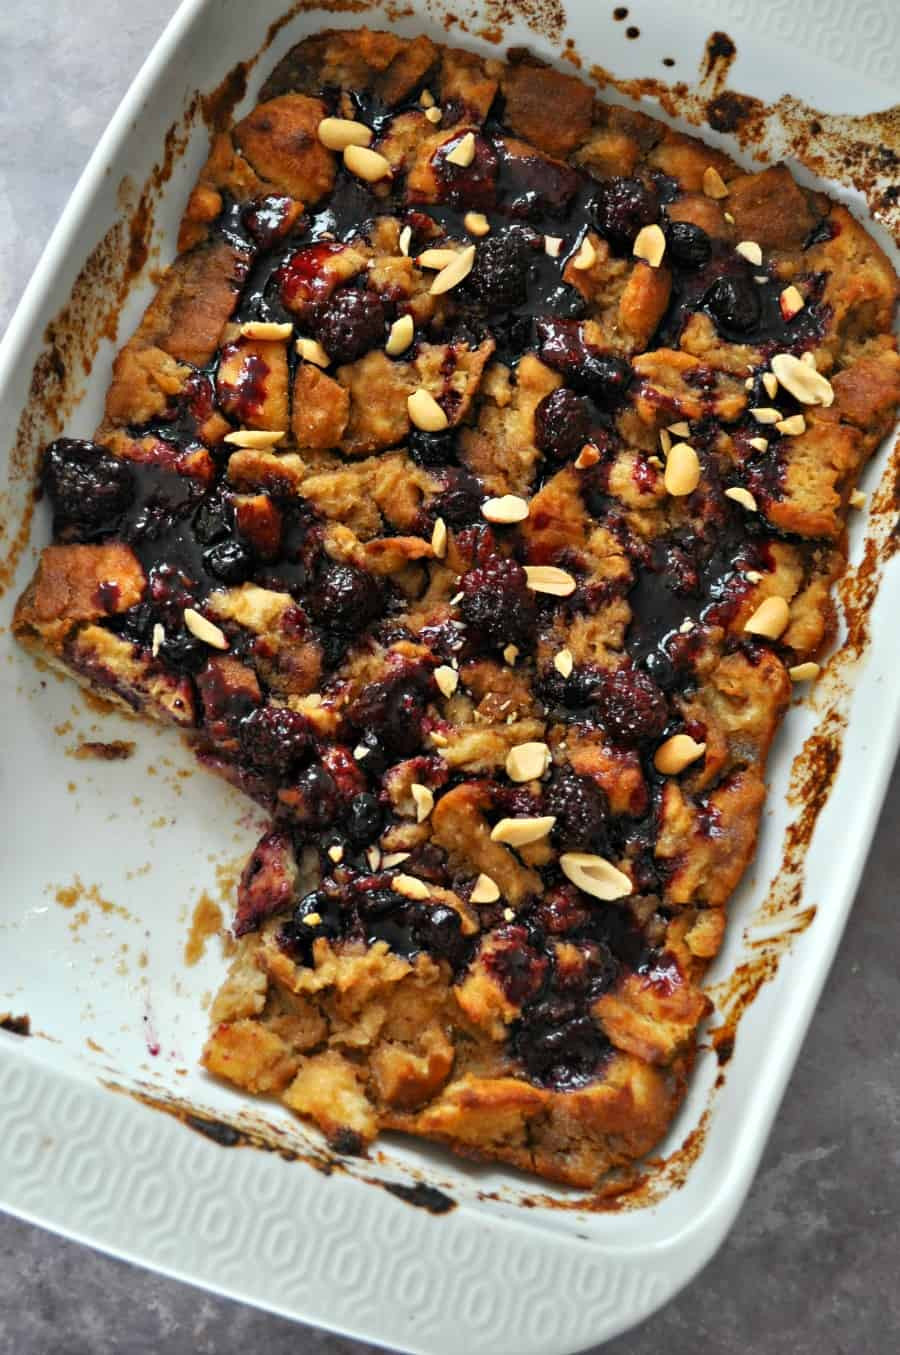 Vegan Bread Pudding  Vegan Peanut Butter and Jelly Bread Pudding Rabbit and